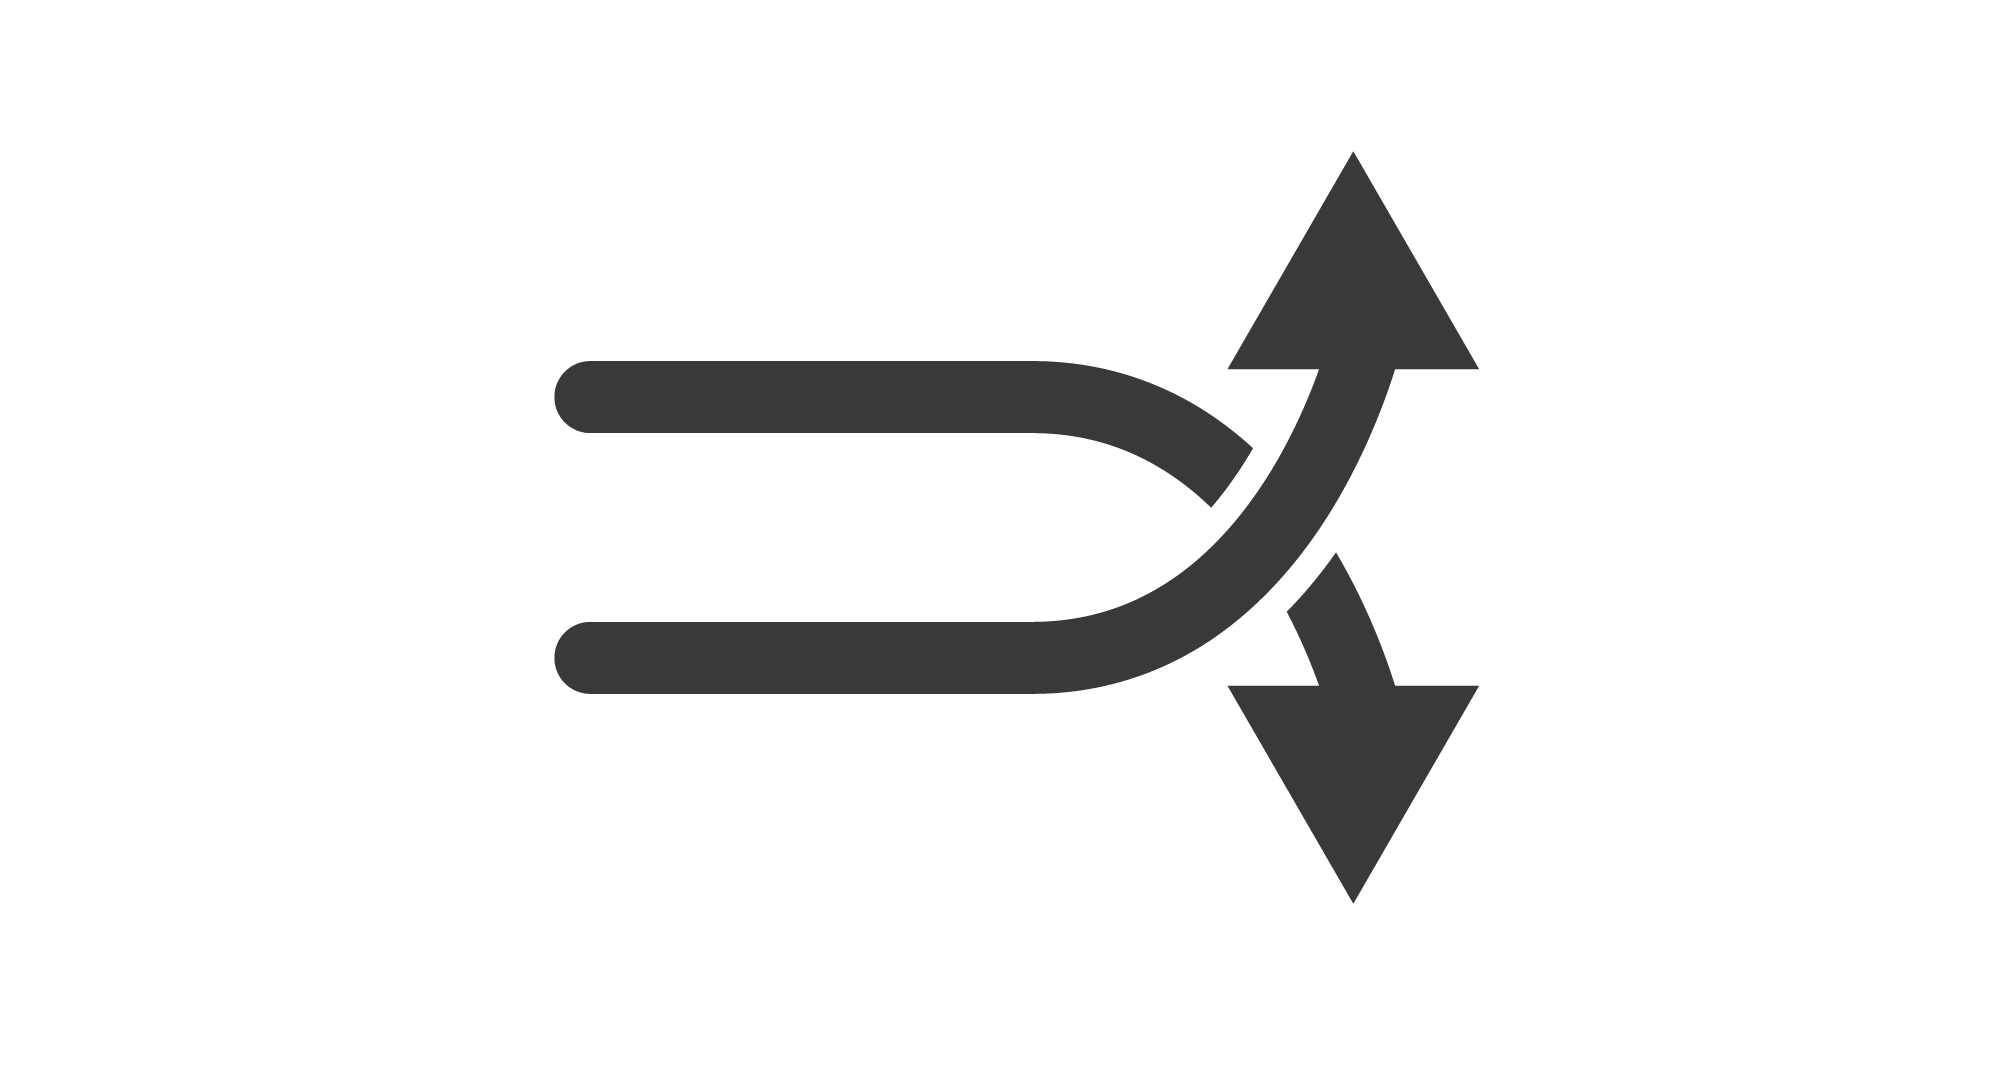 ICON_PATH.png